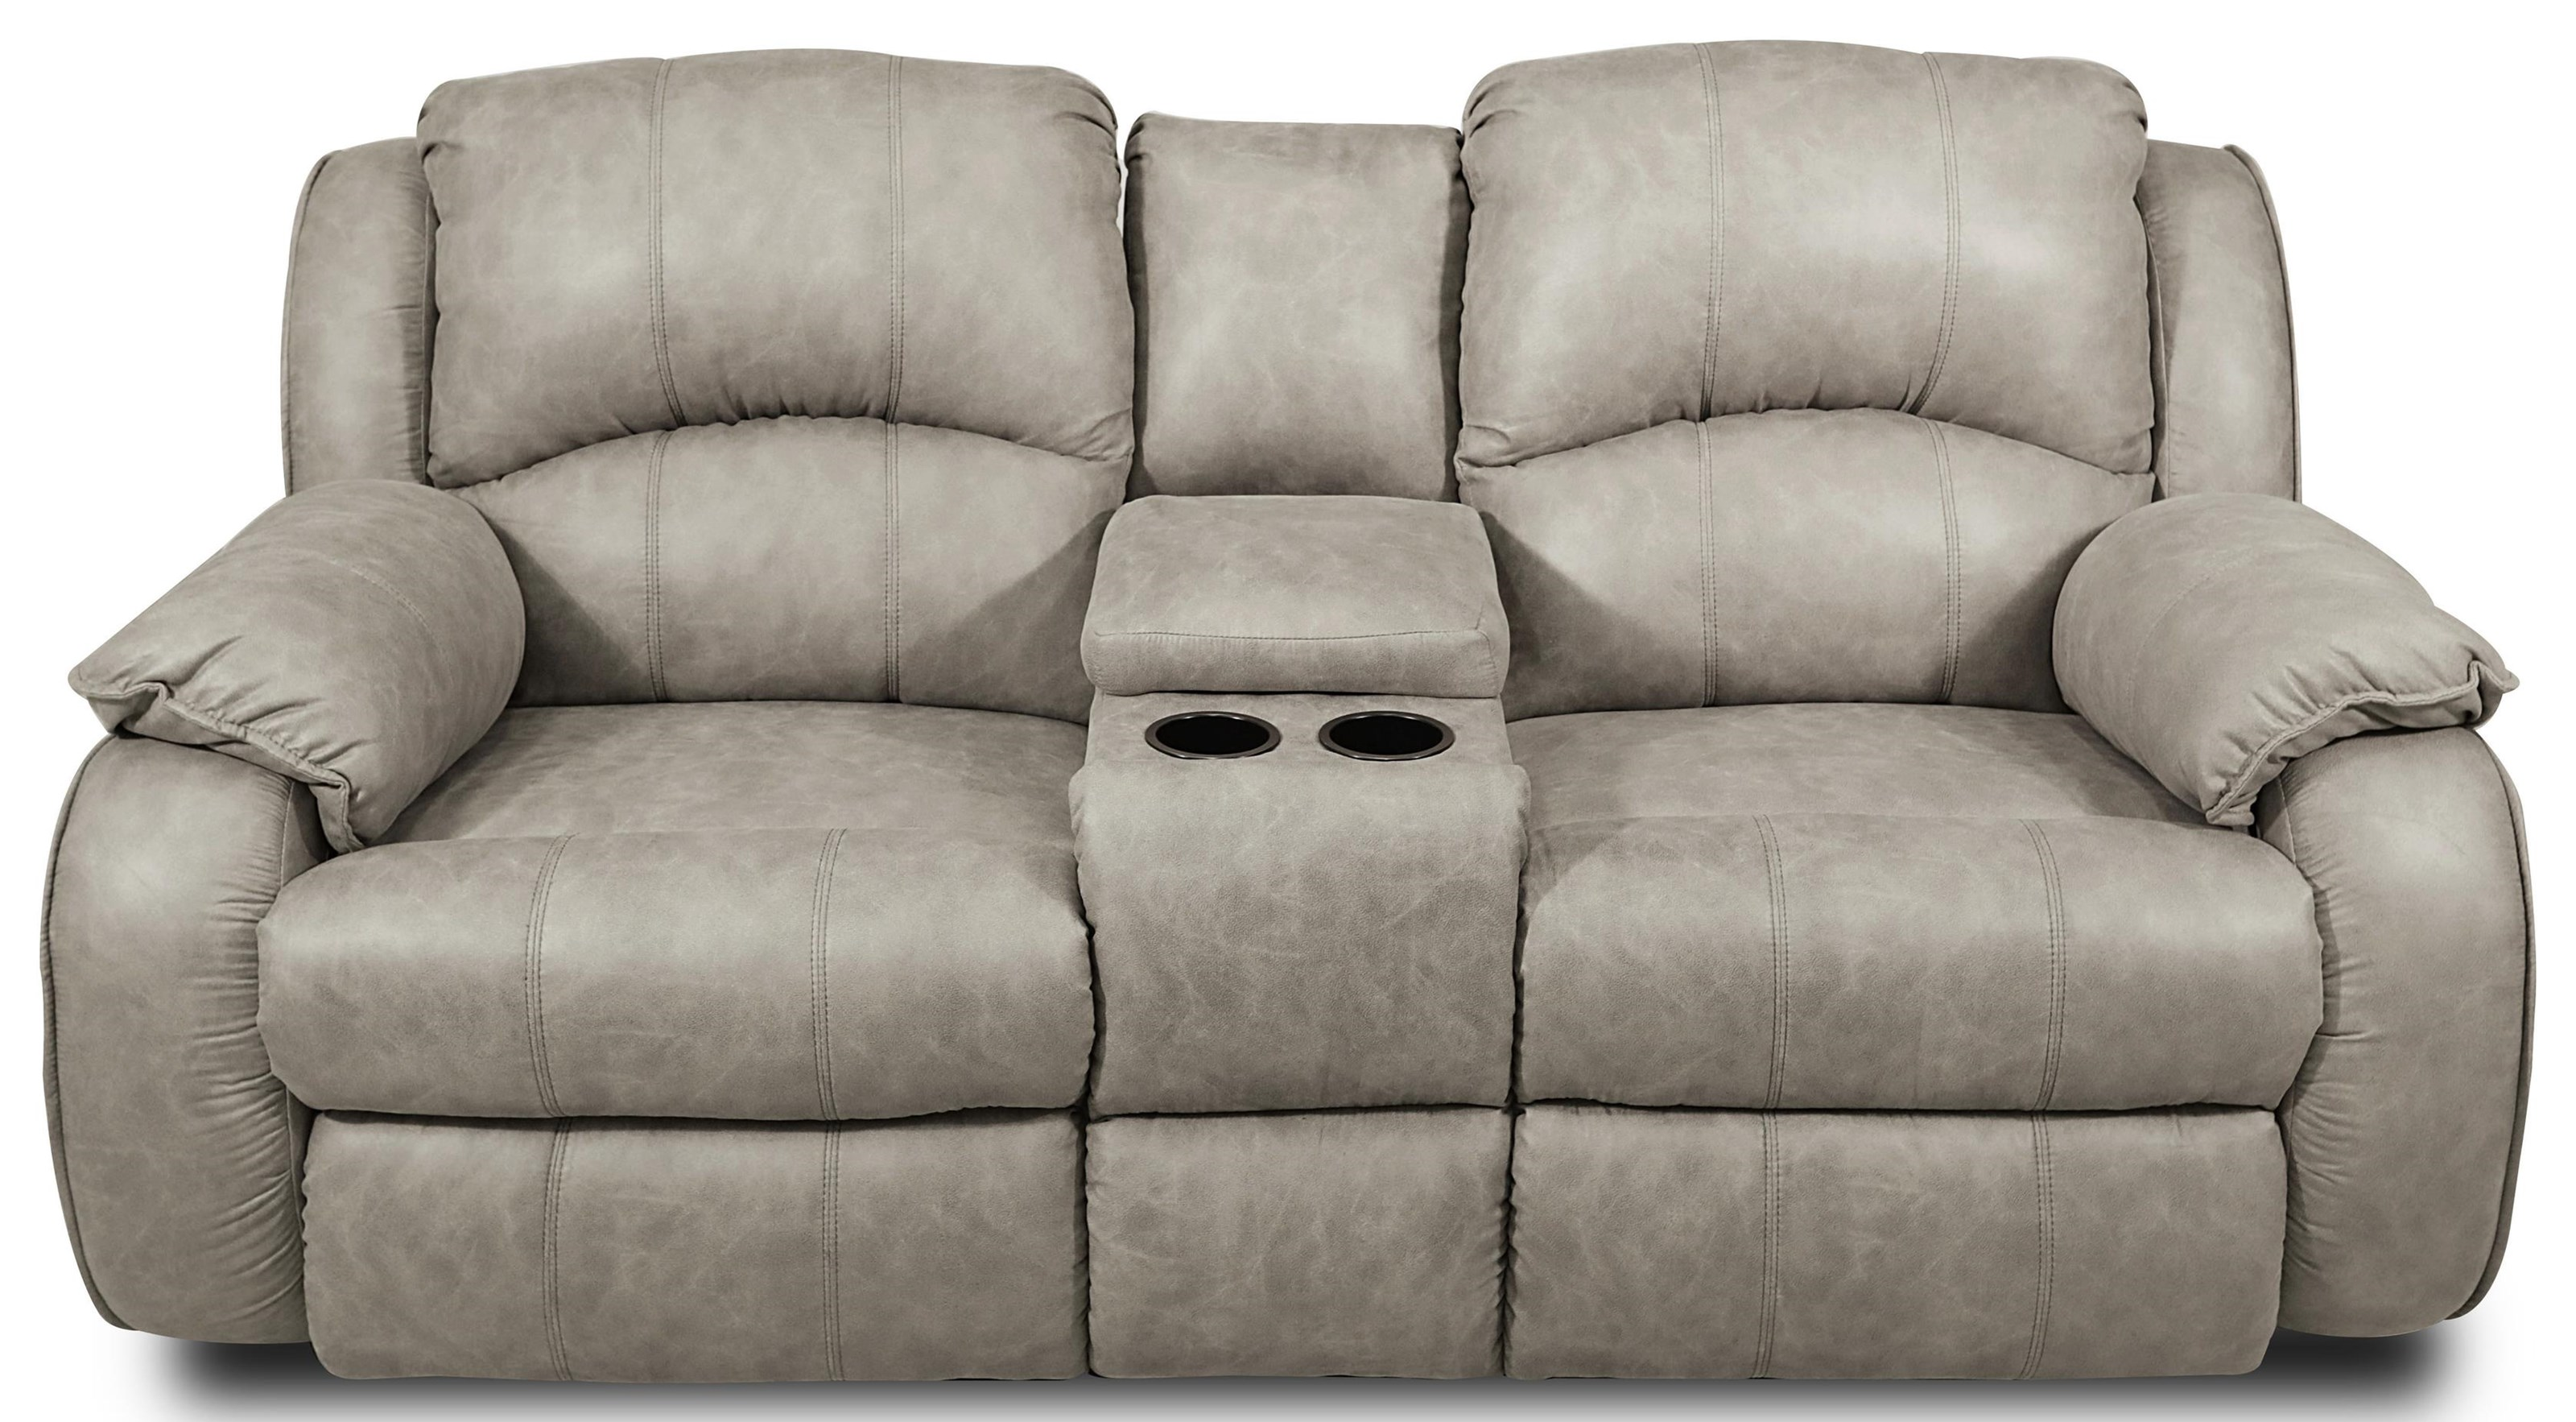 Comfy and Convenient Console Sofa with Reclining Chairs and Cup-Holders